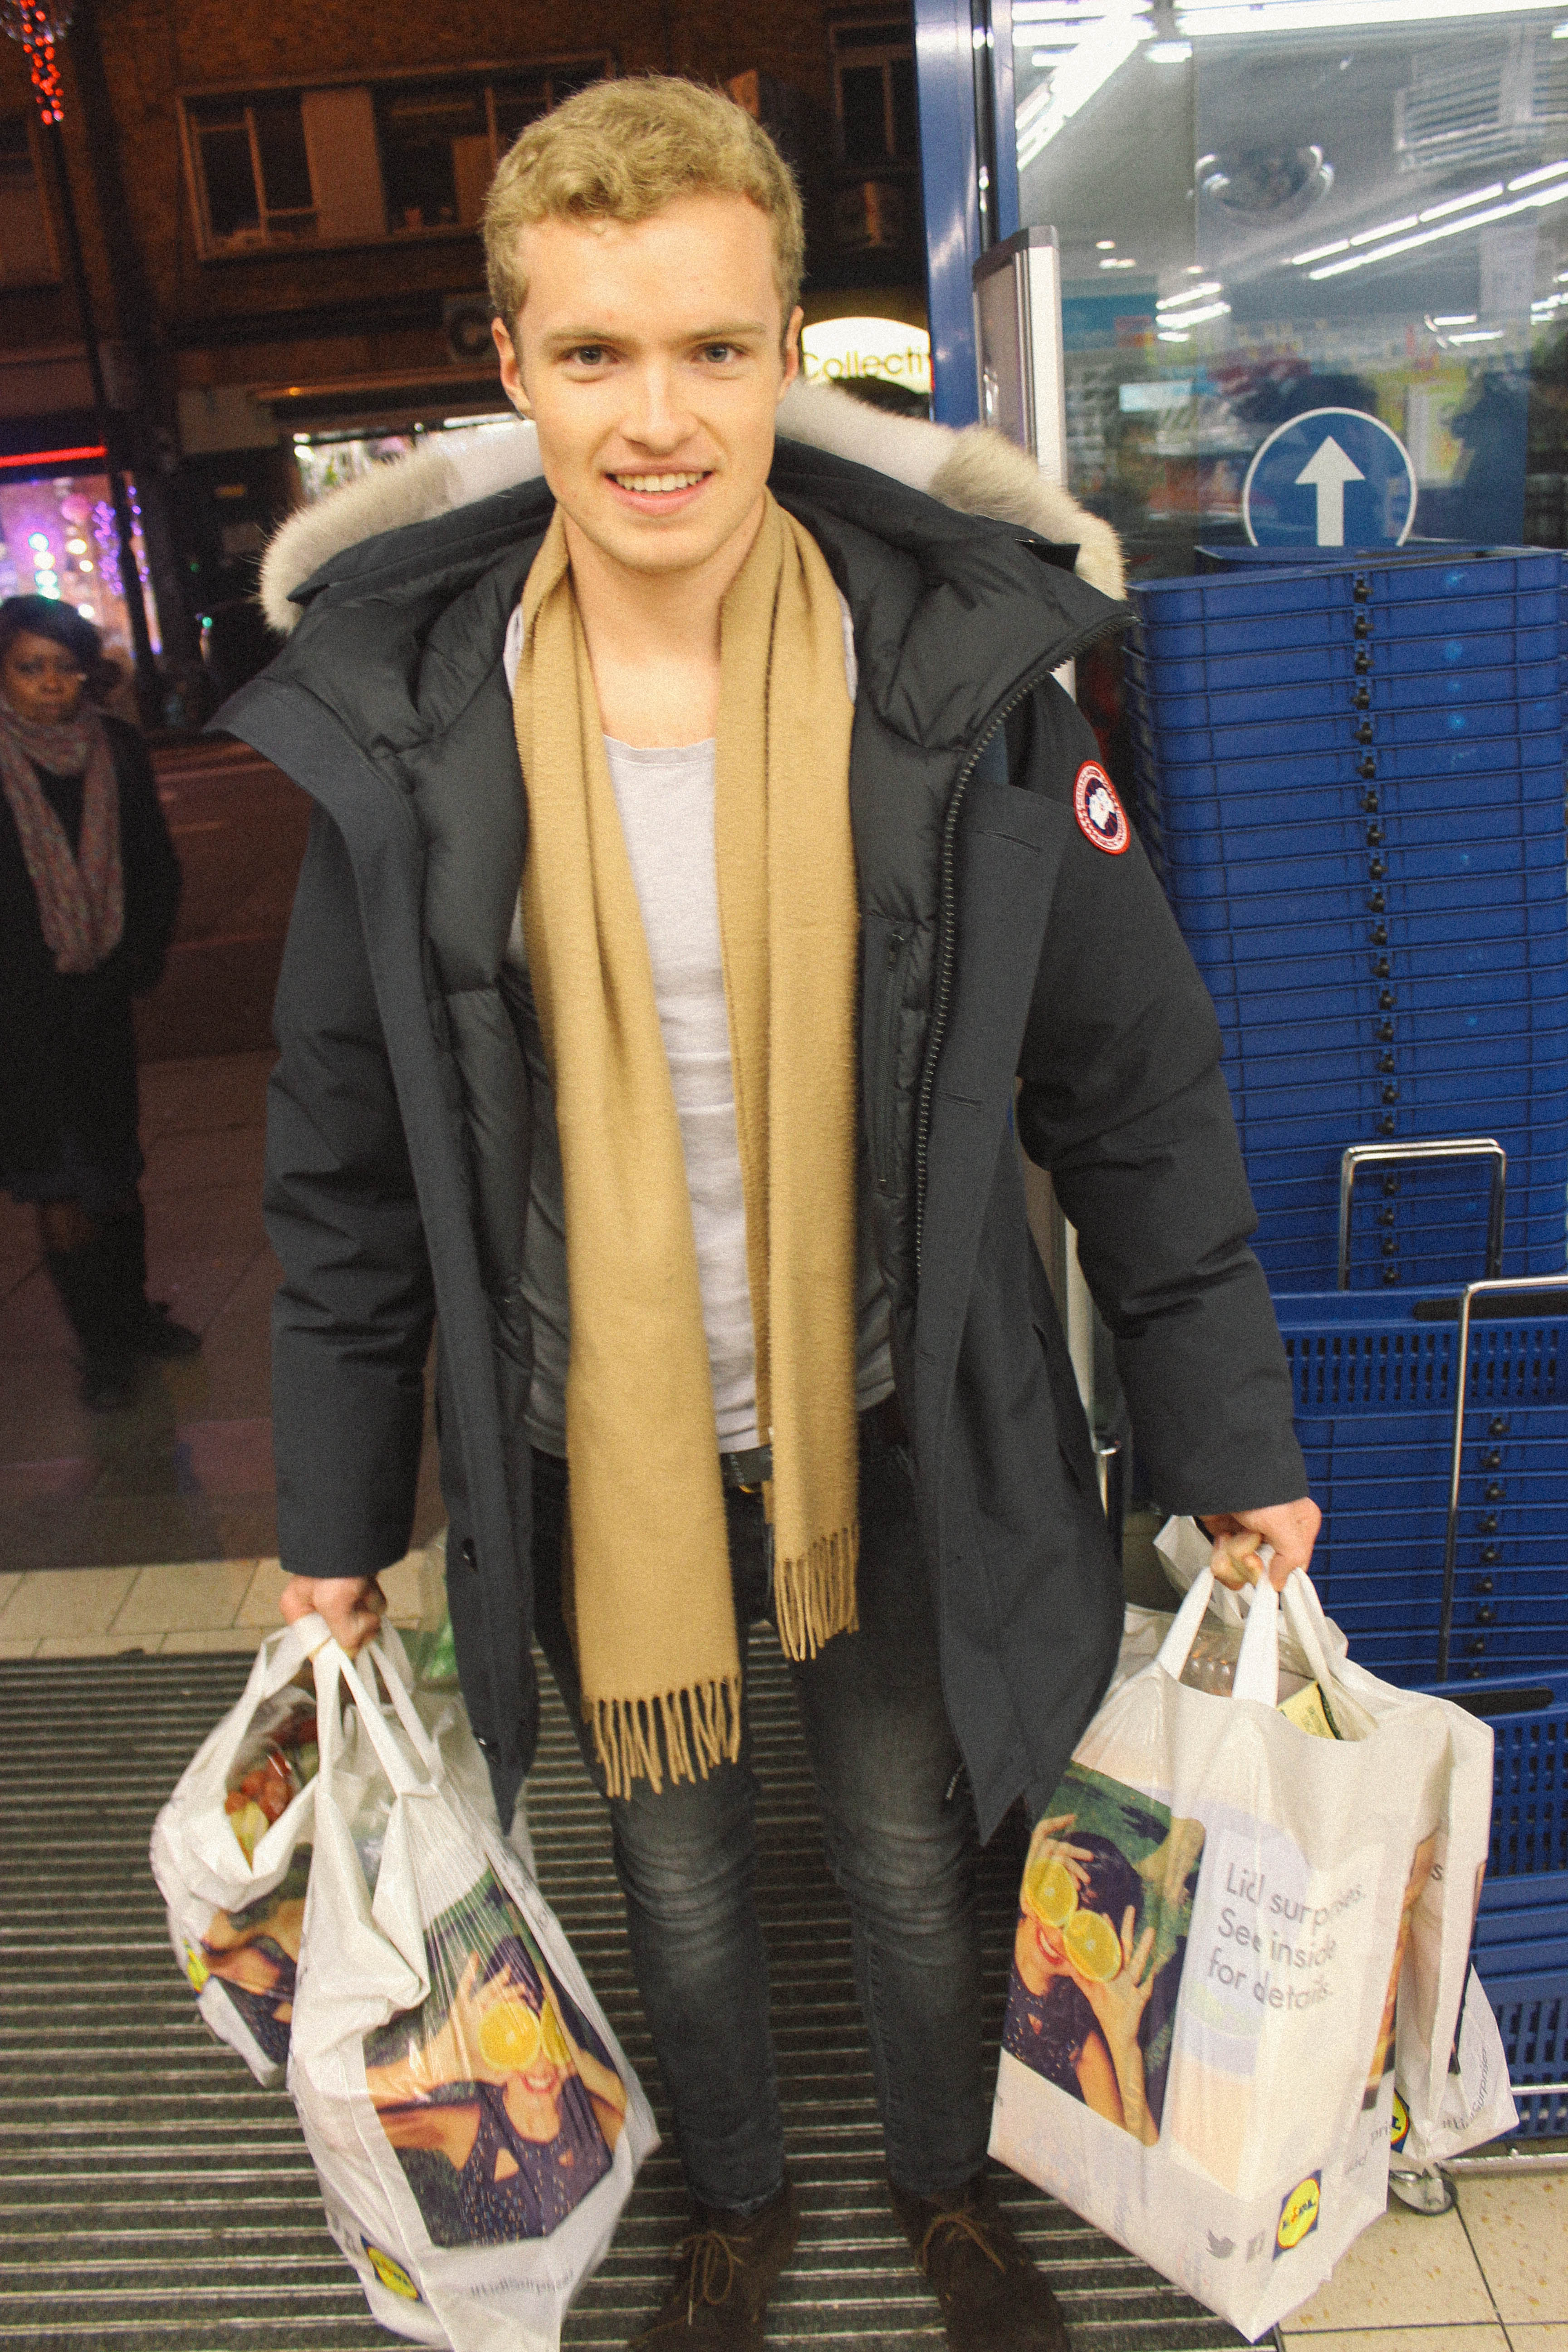 With Lidl bags